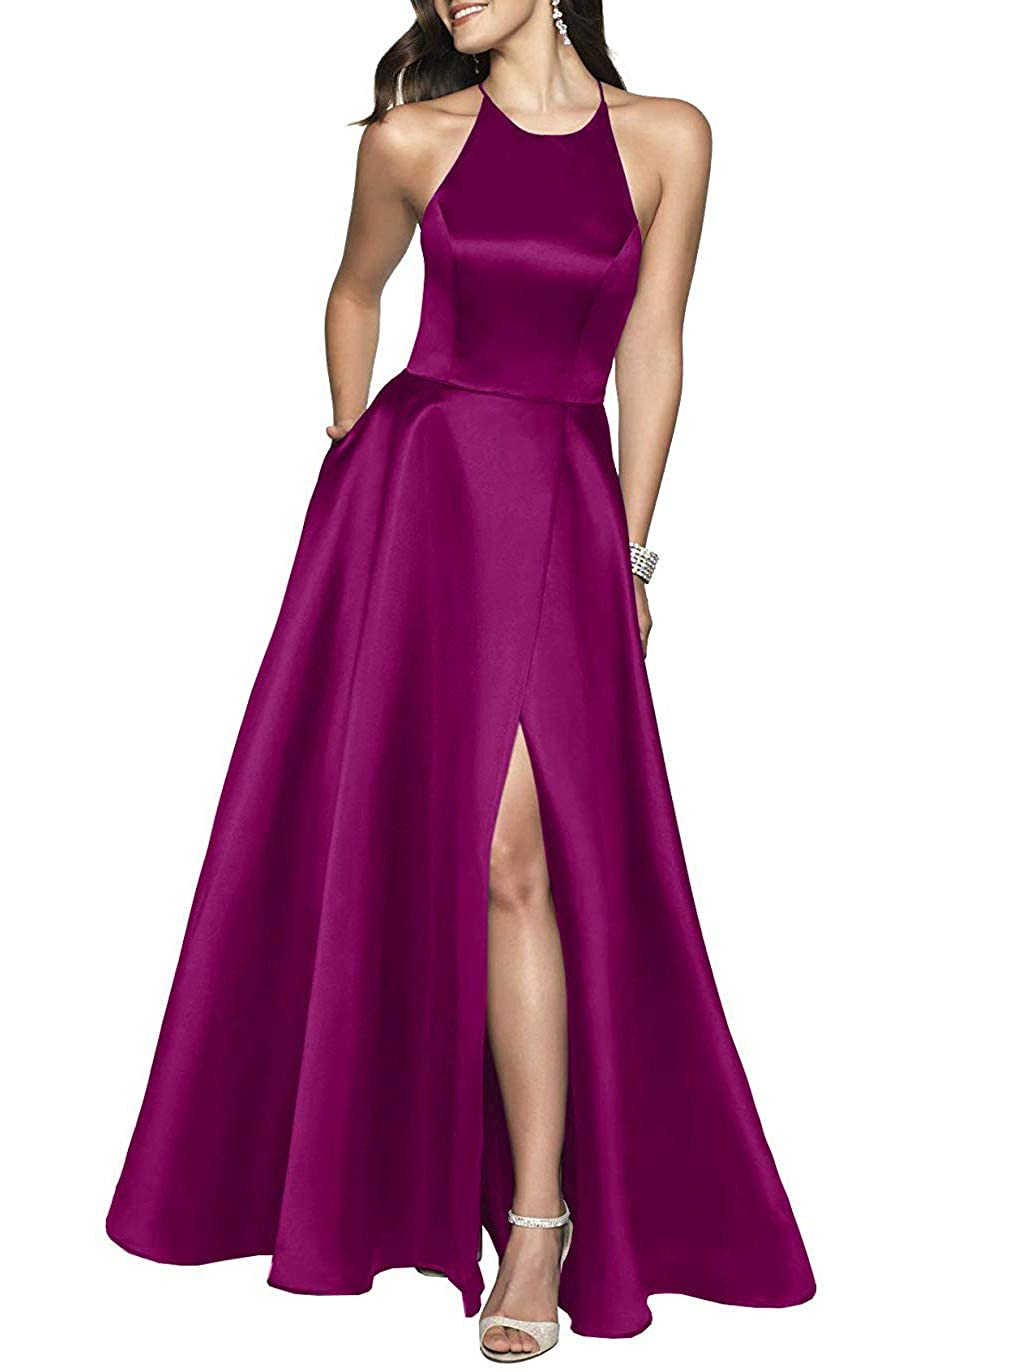 Raspberry YUSHENGSM Women's High Neck Satin Long Prom Dresses for Women Formal Evening Party Gowns